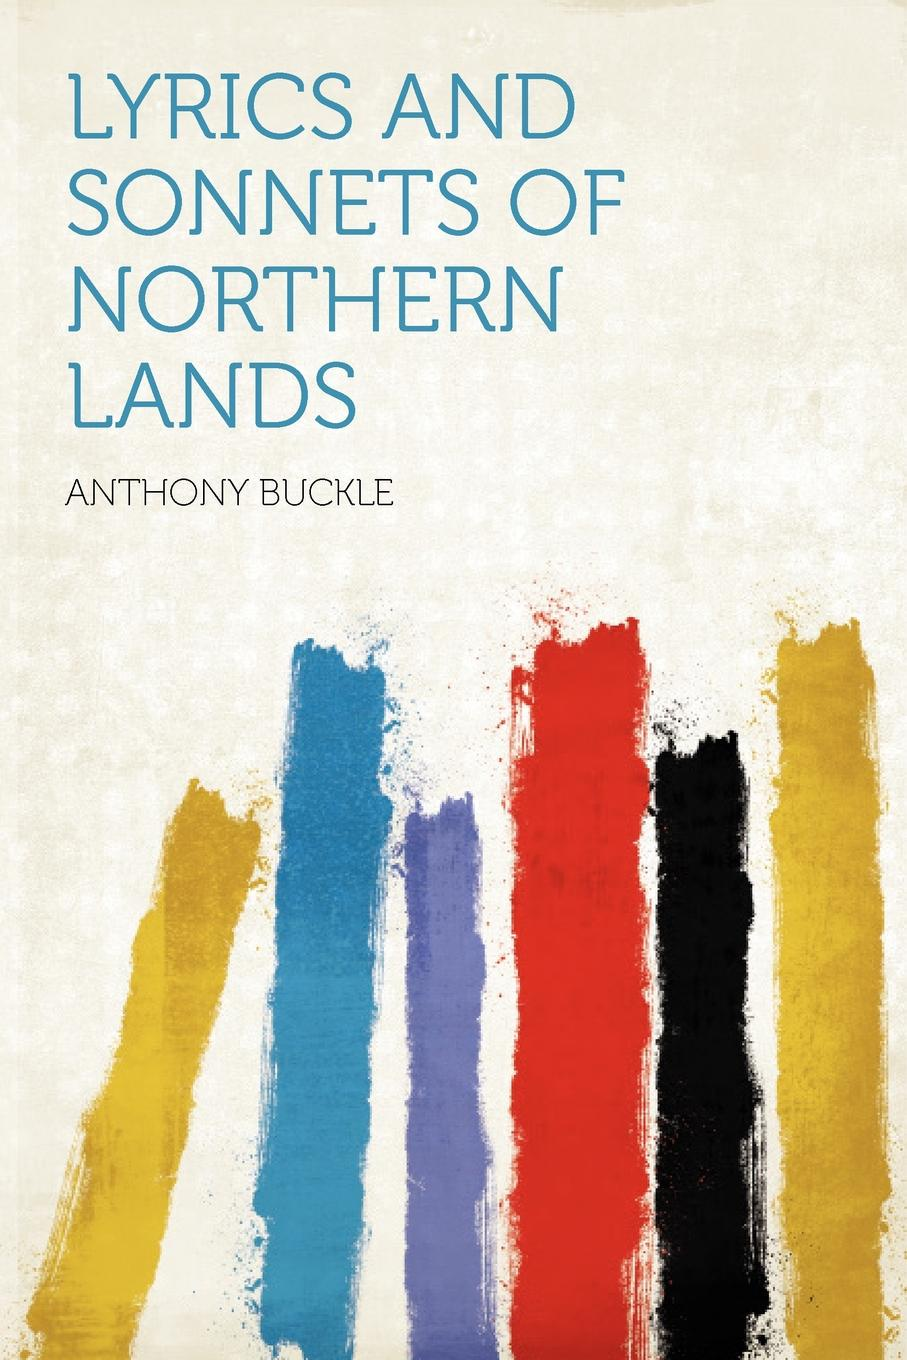 Lyrics and Sonnets of Northern Lands